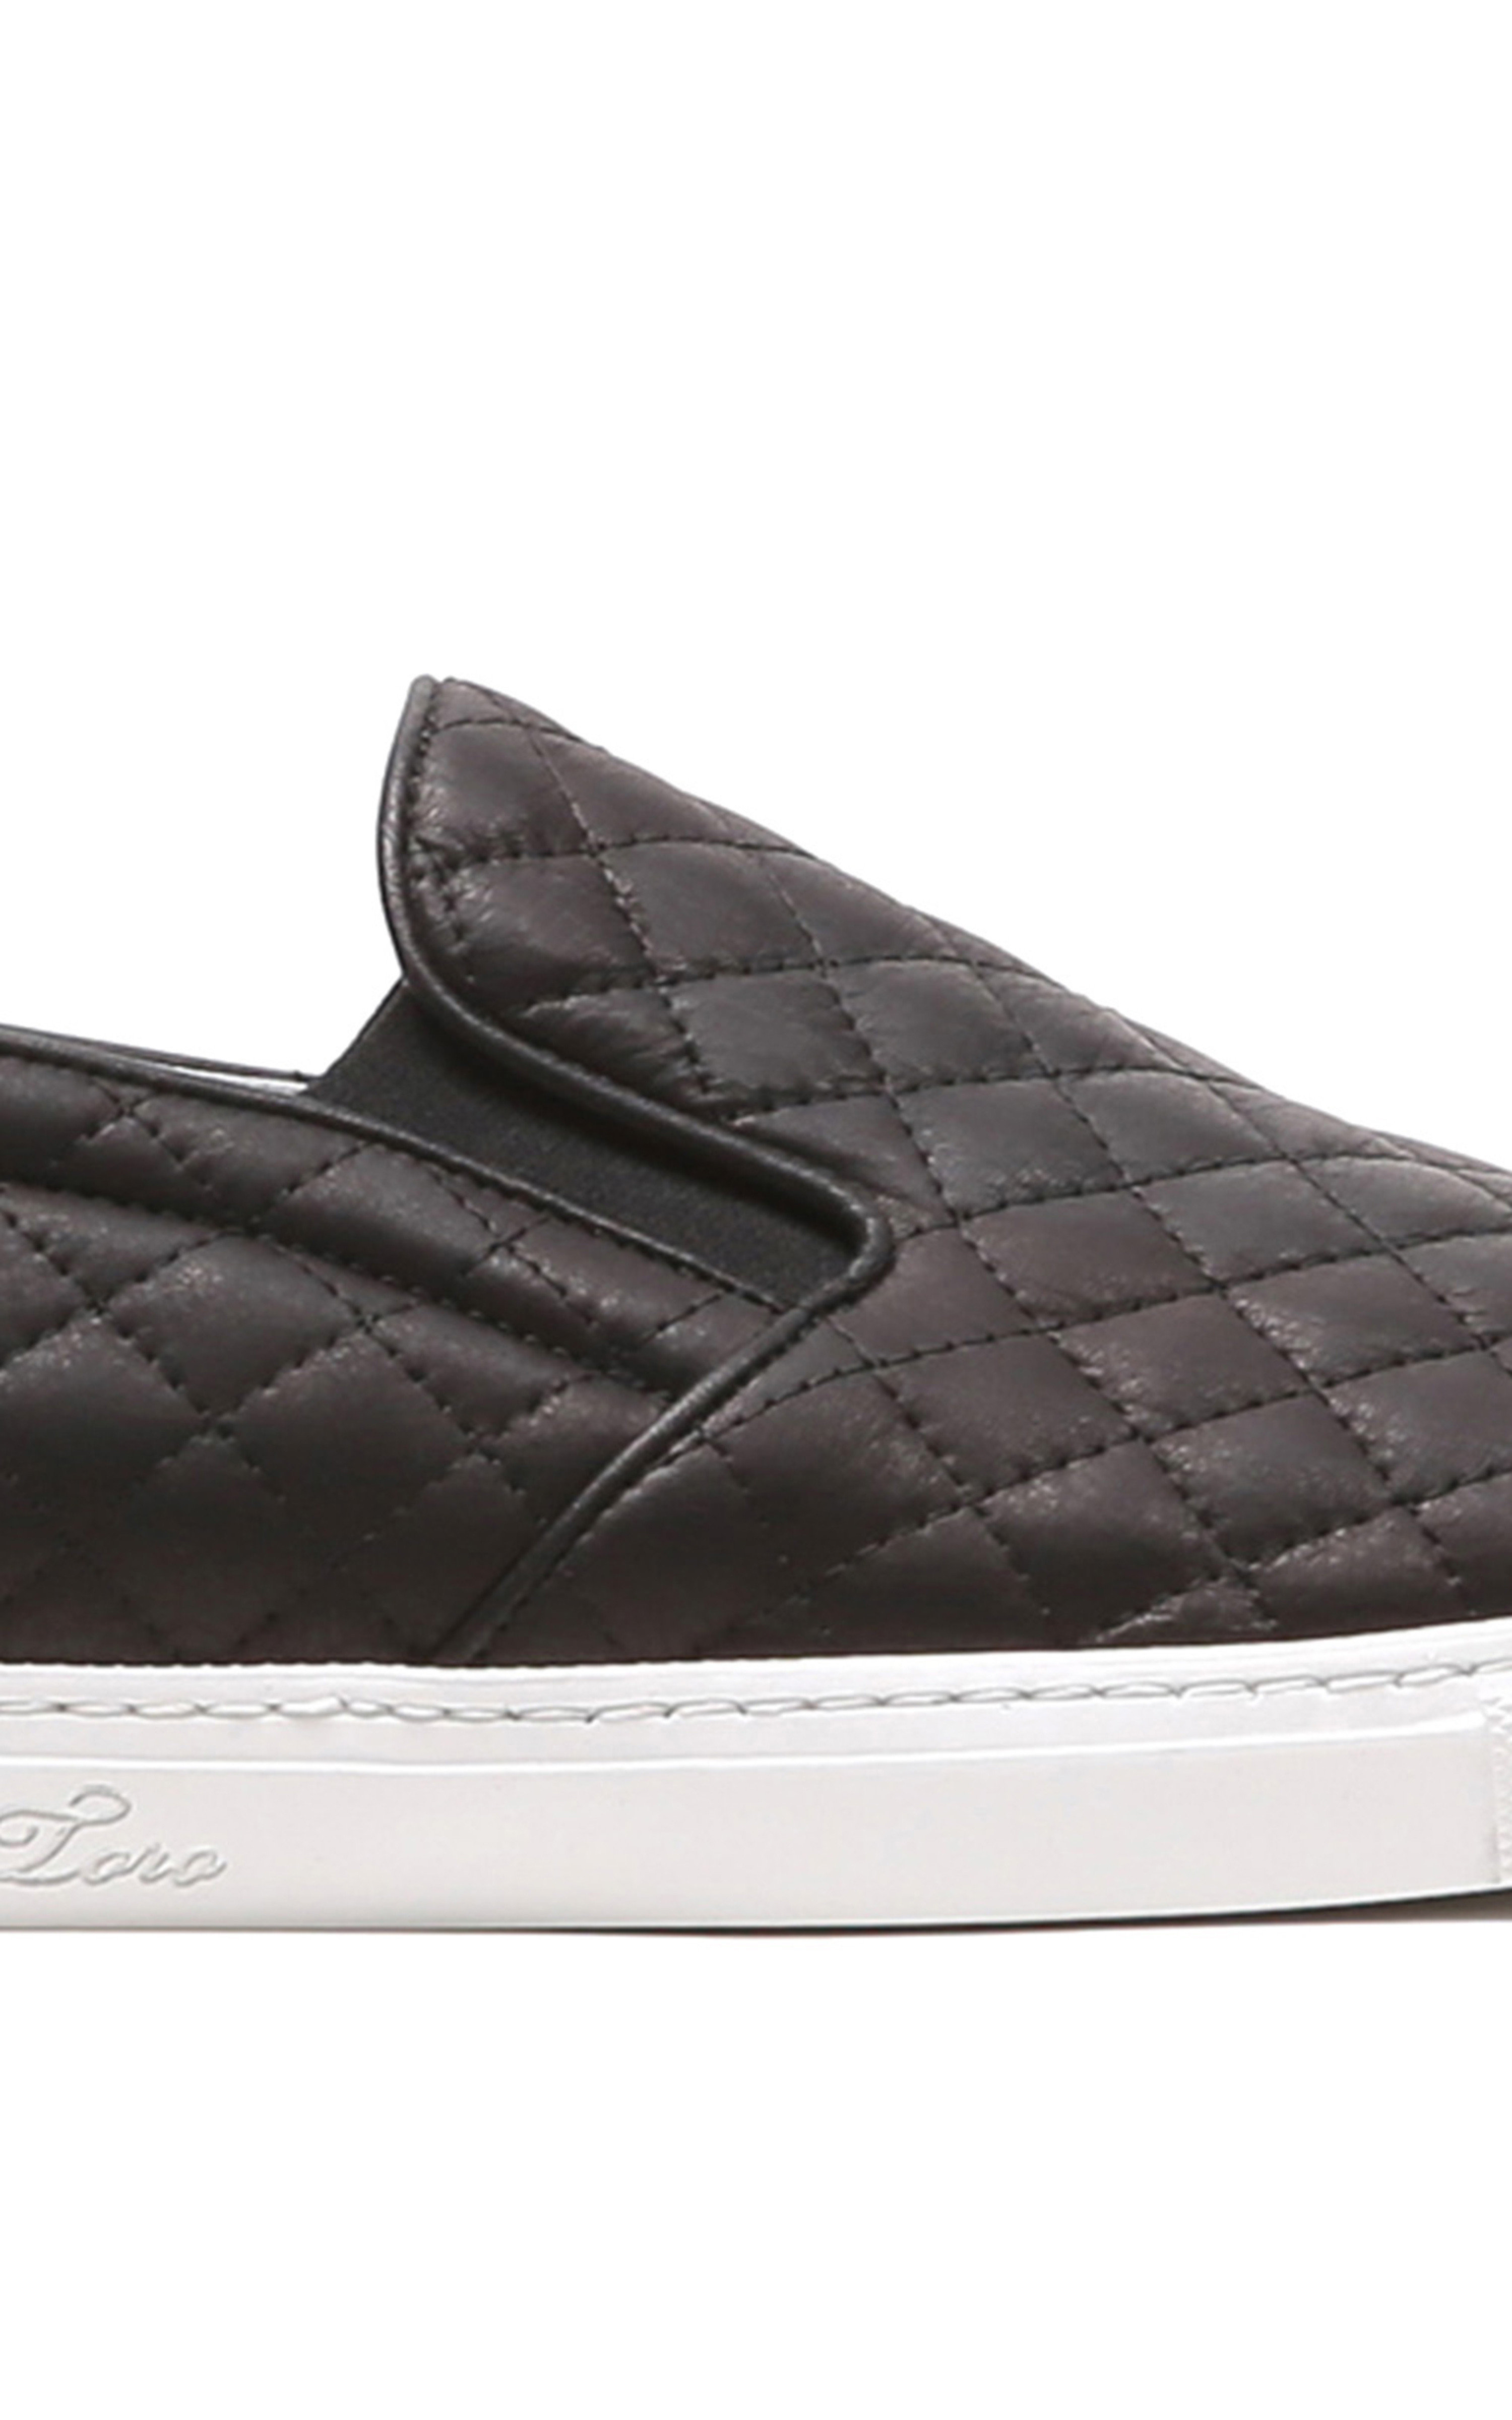 72a3da45401c Lyst - Del Toro Black Quilted Leather Slip On Sneaker with White ...